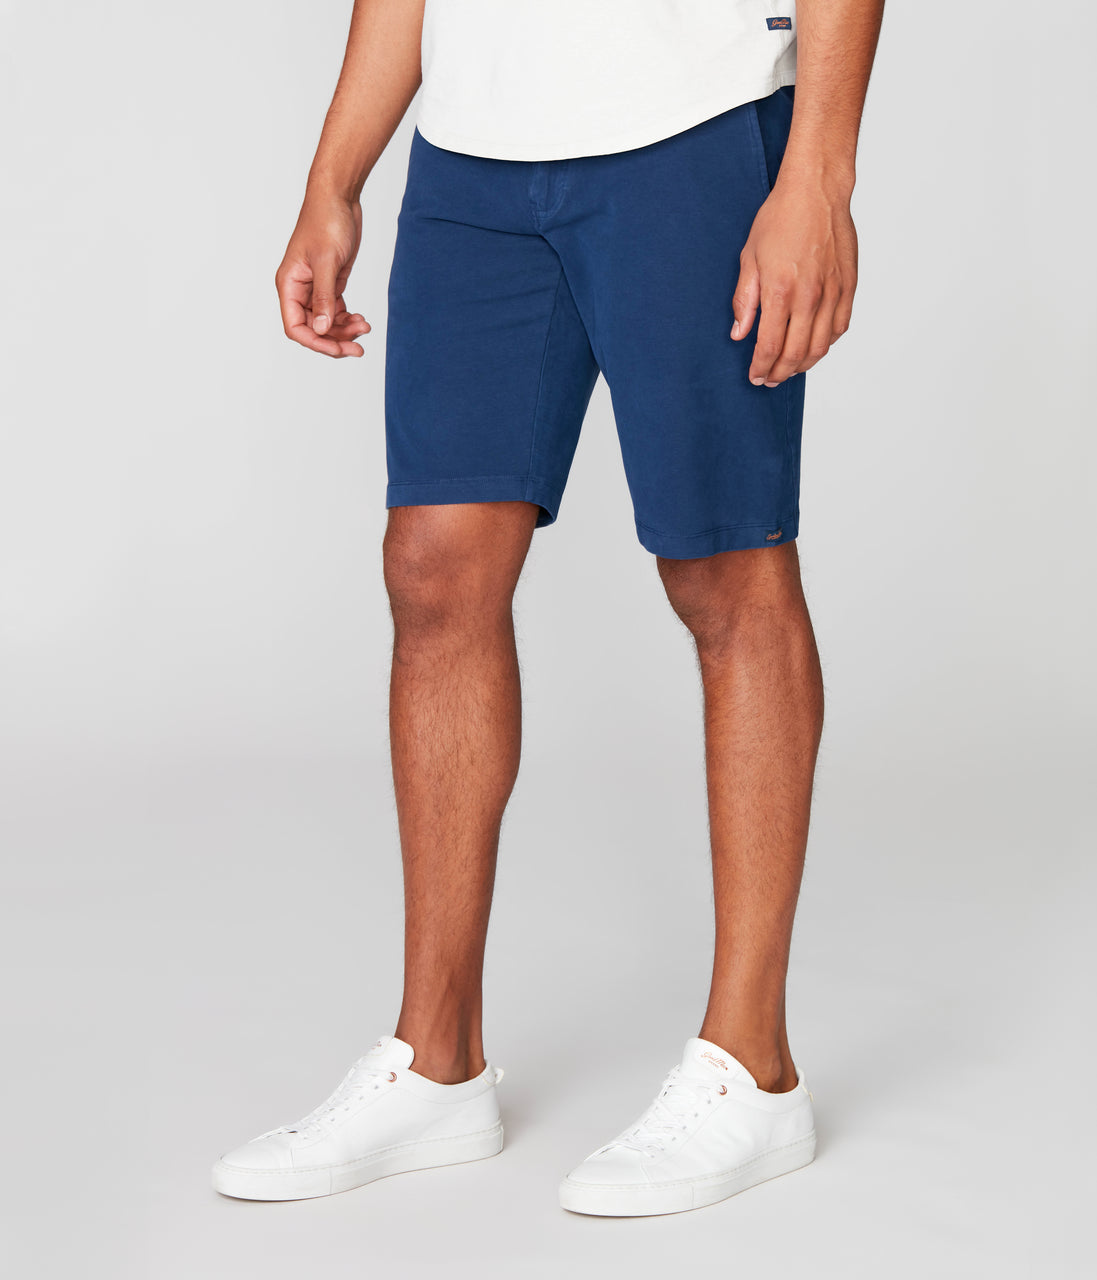 Flex Pro Jersey Tulum Trunk - Midnight Blue - Good Man Brand - Flex Pro Jersey Tulum Trunk - Midnight Blue